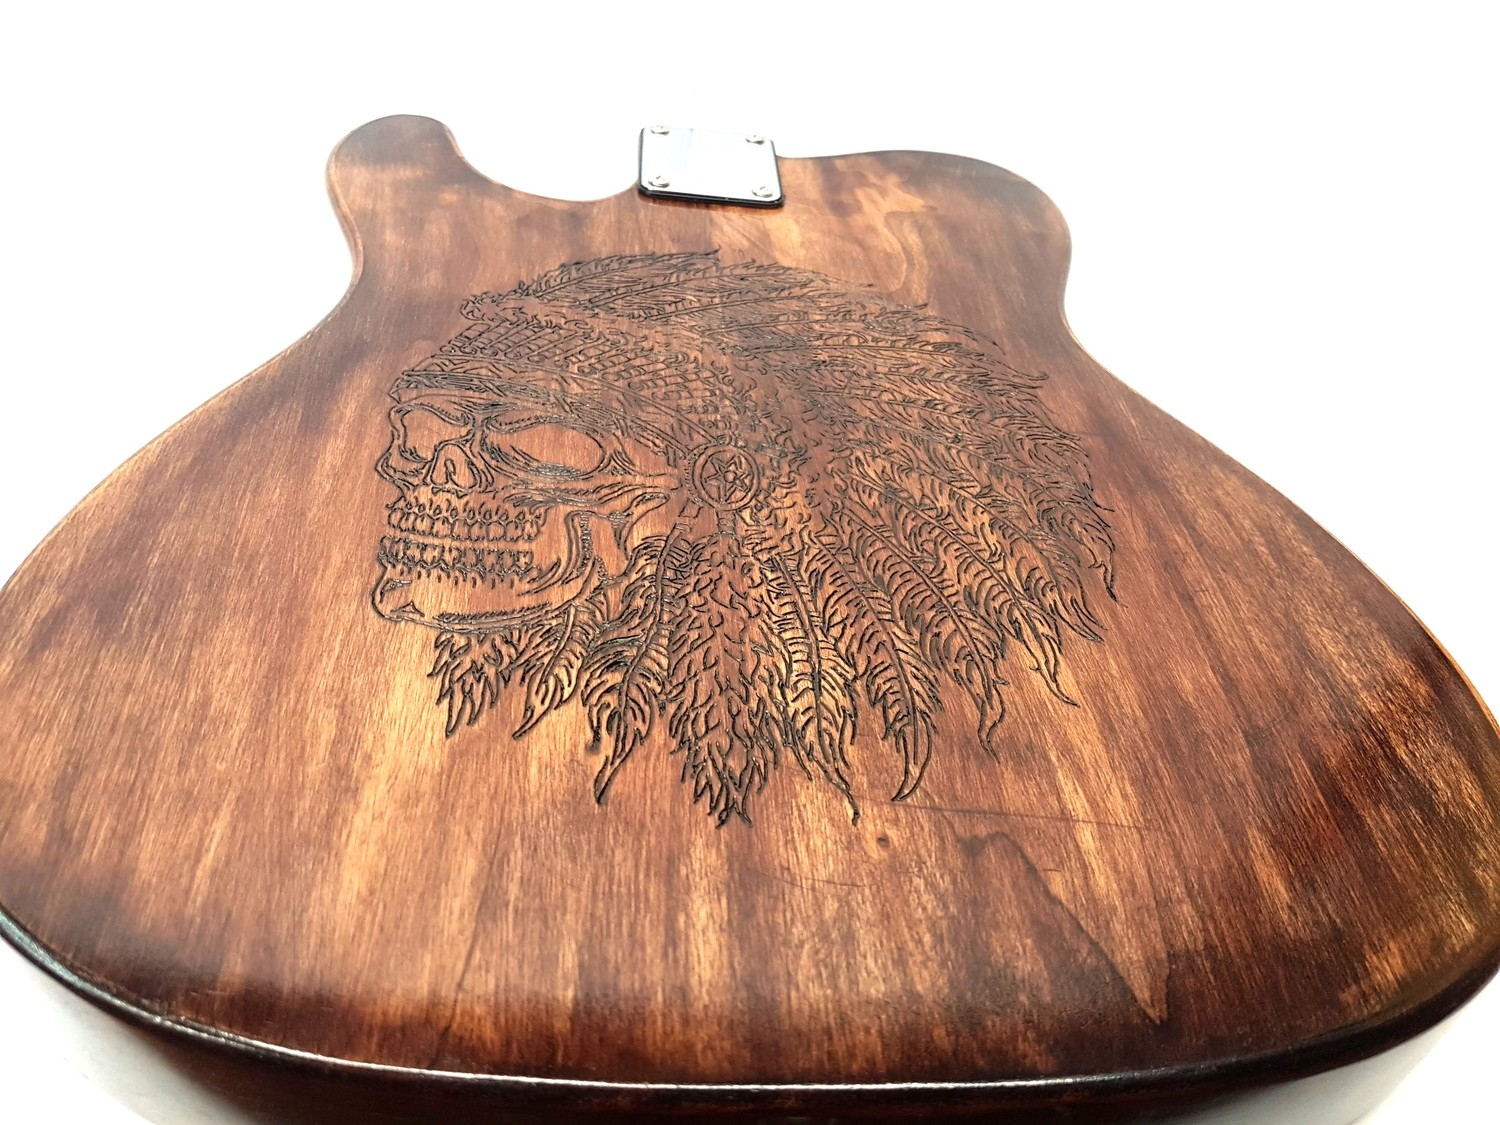 Carparelli Loaded One of a Kind, 2Pc Alder Body Hand Engraved Custom- NO PICKUPS